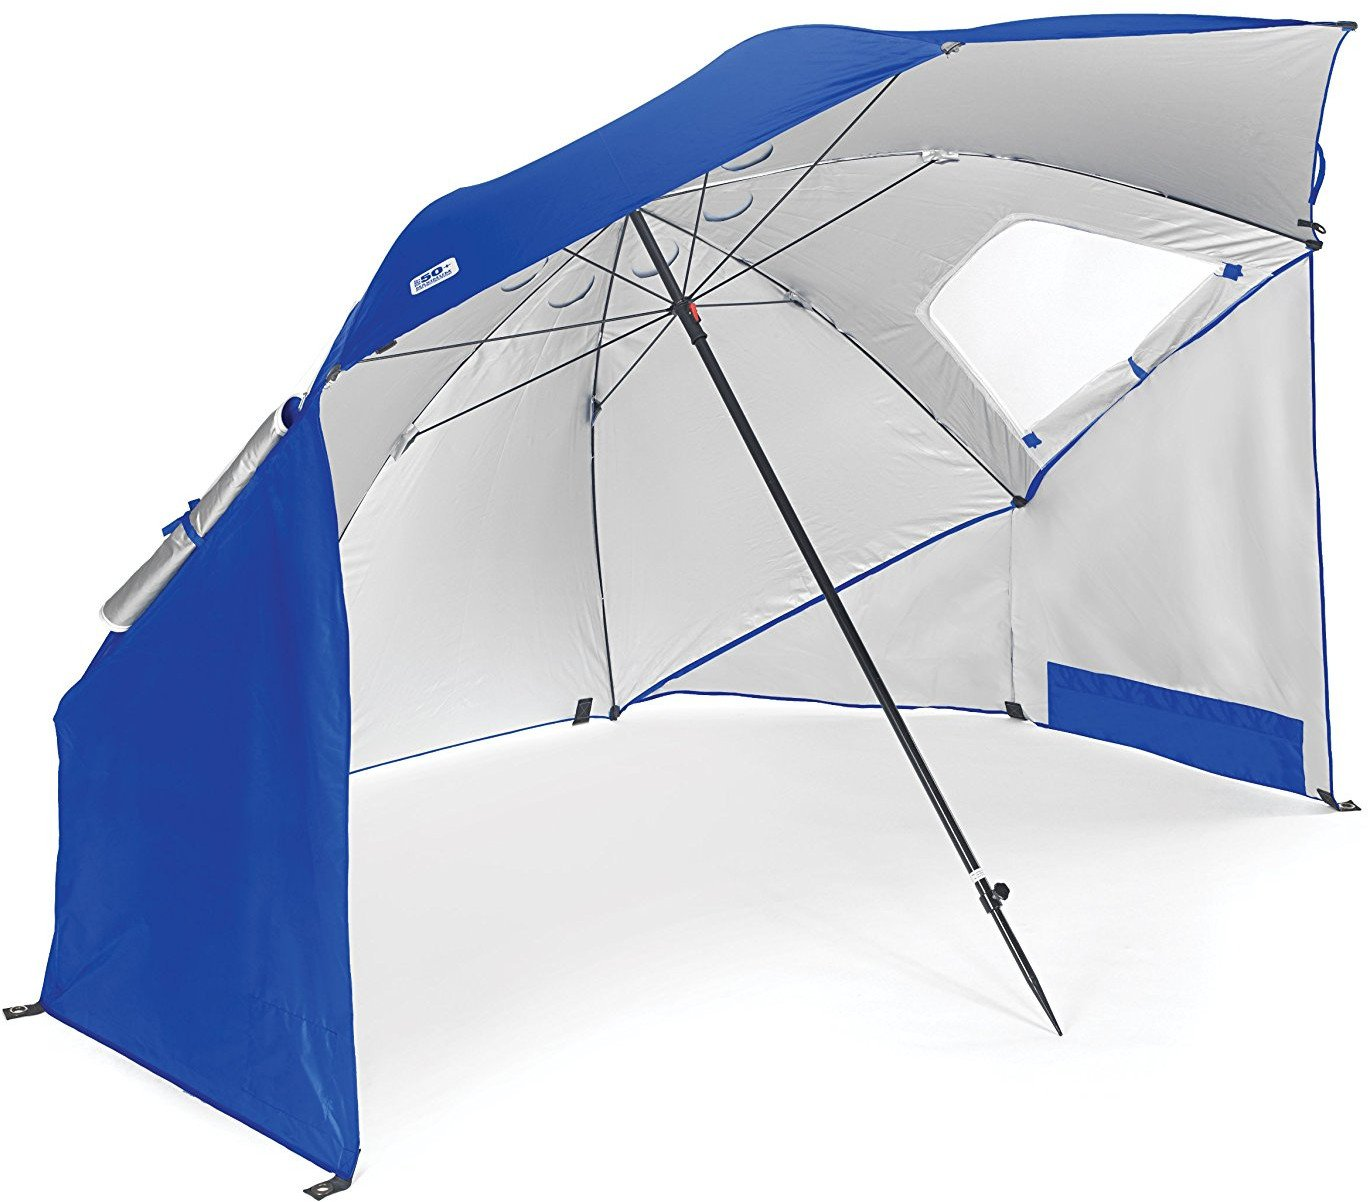 The Sport-Brella Vented SPF 50+ Sun and Rain Canopy Umbrella travel product recommended by Healy Jones on Lifney.